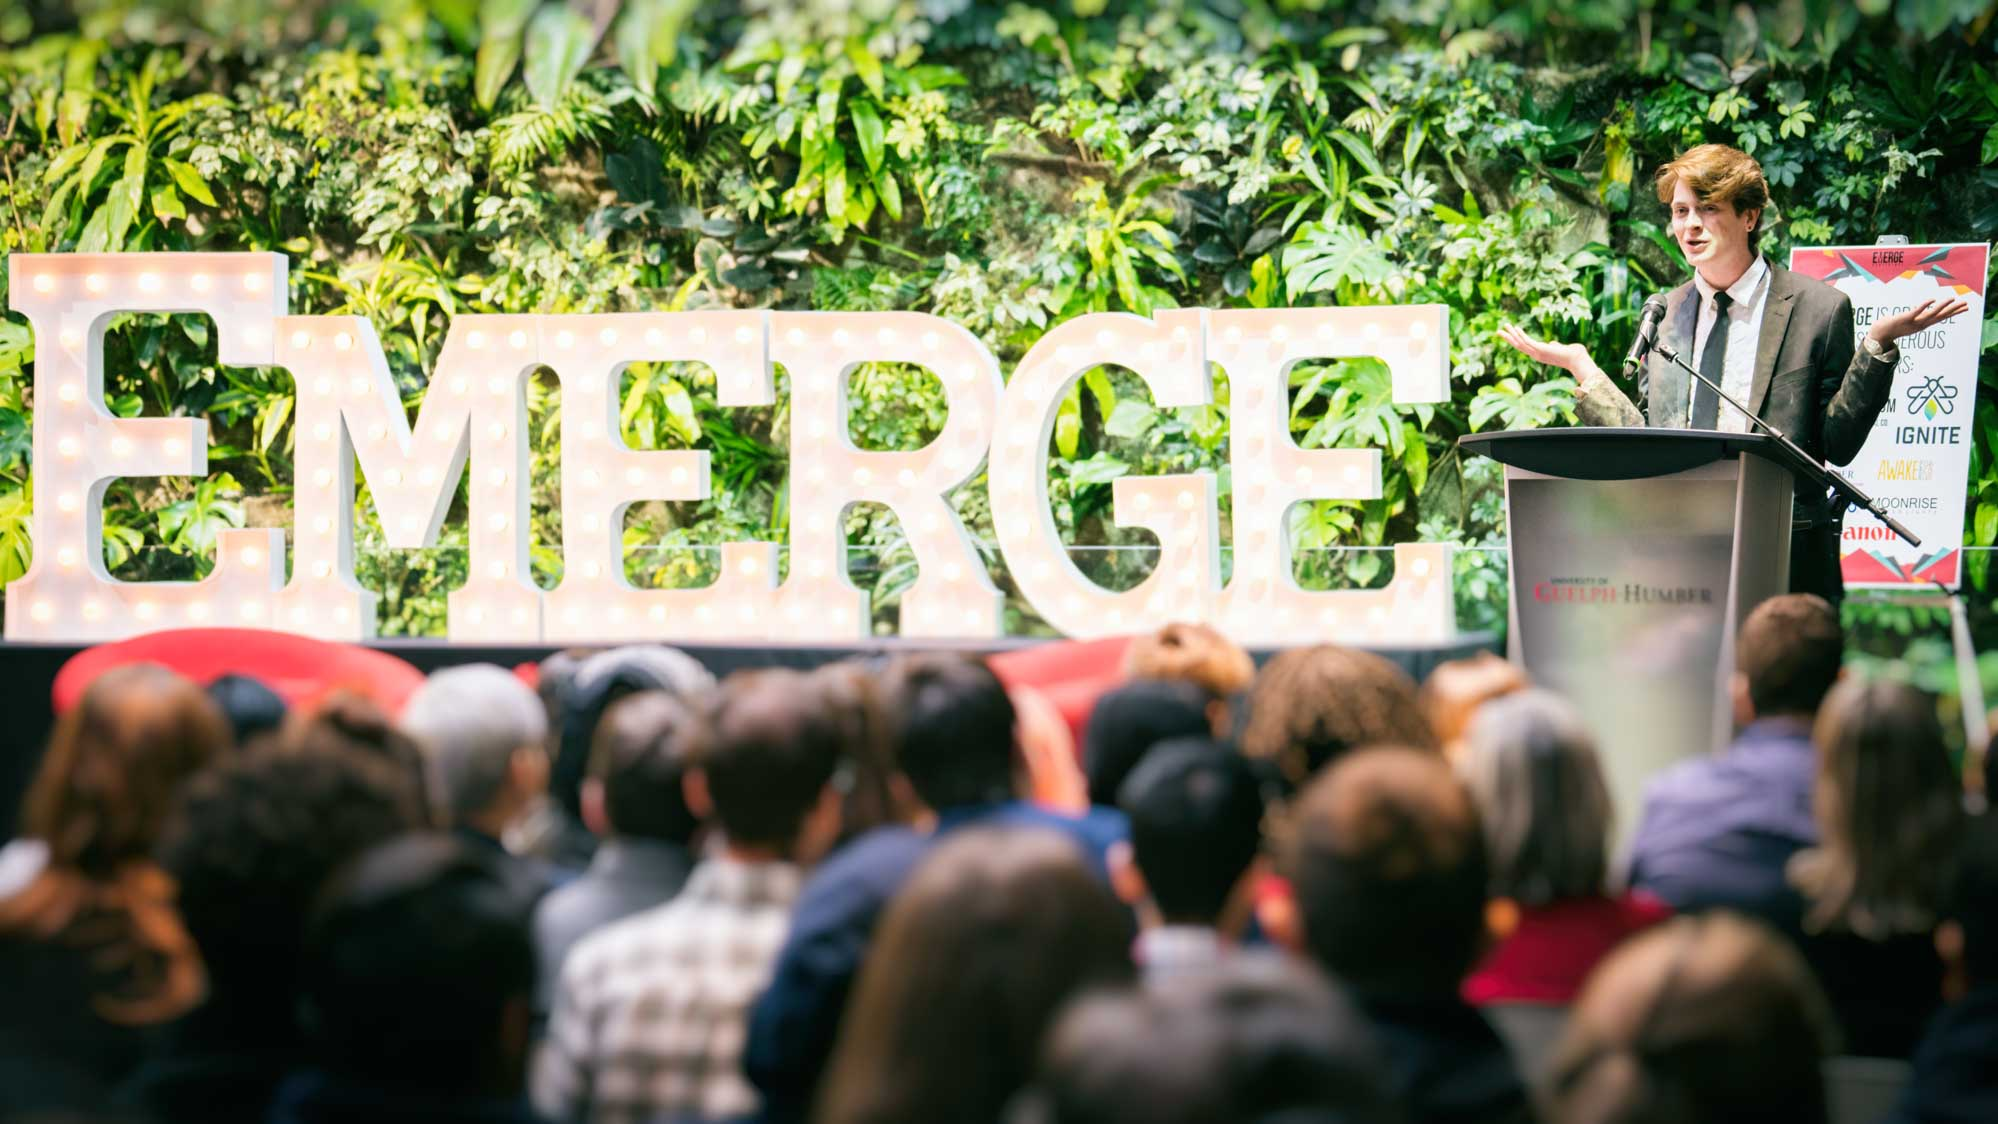 The Emerge Conference host addresses attendees